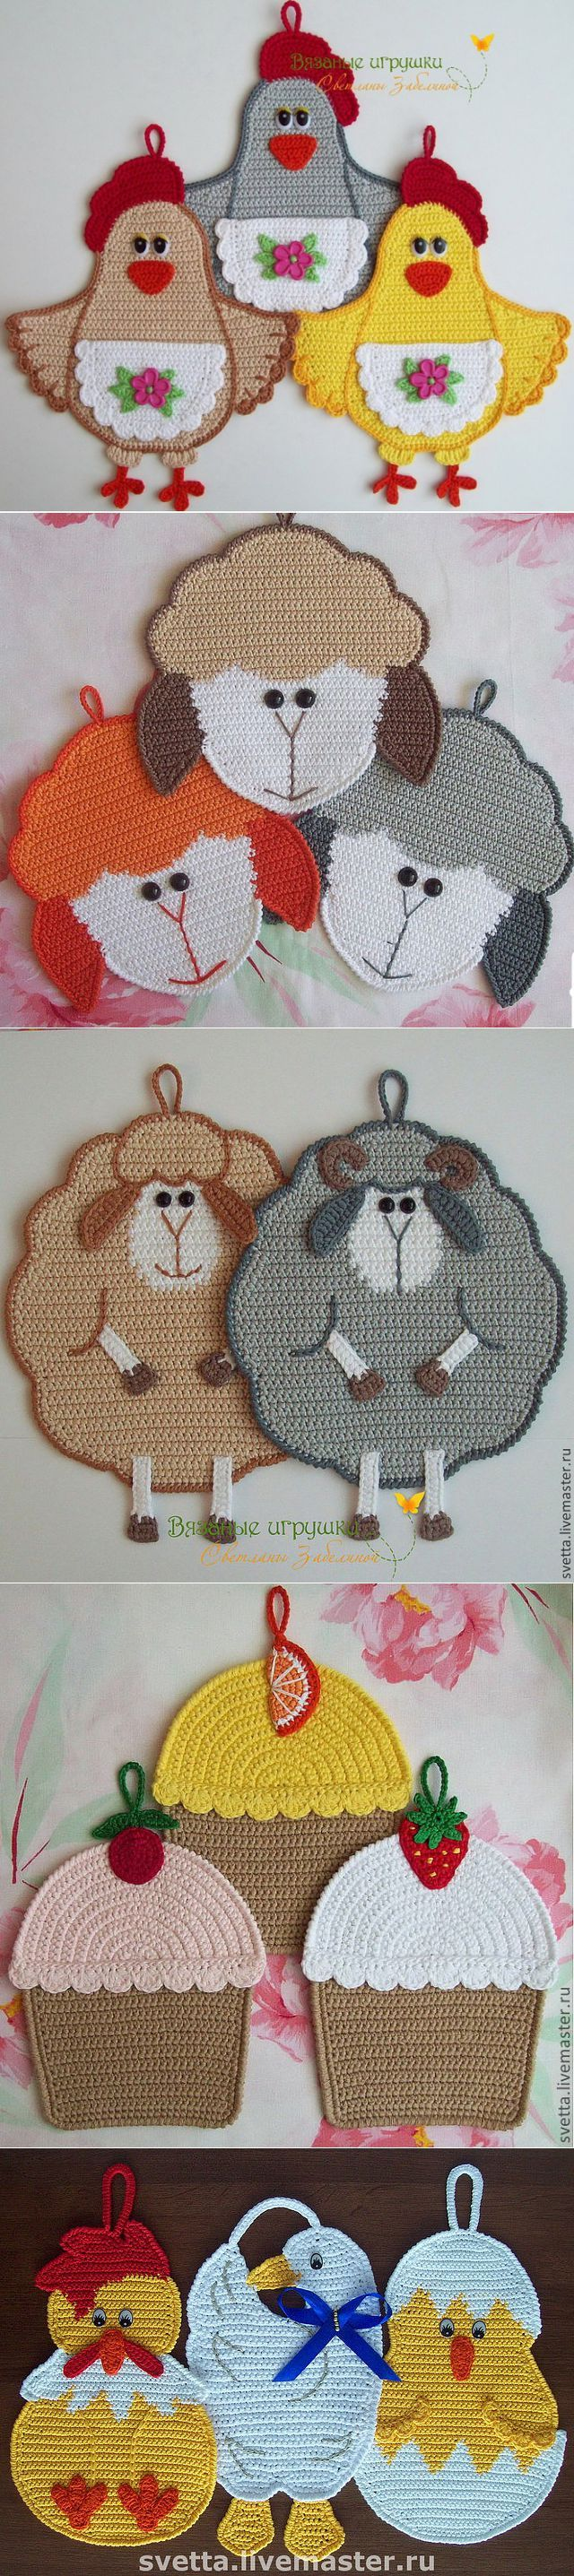 ... crochet # potholders http postila ru post 24930664 crocheted chicken